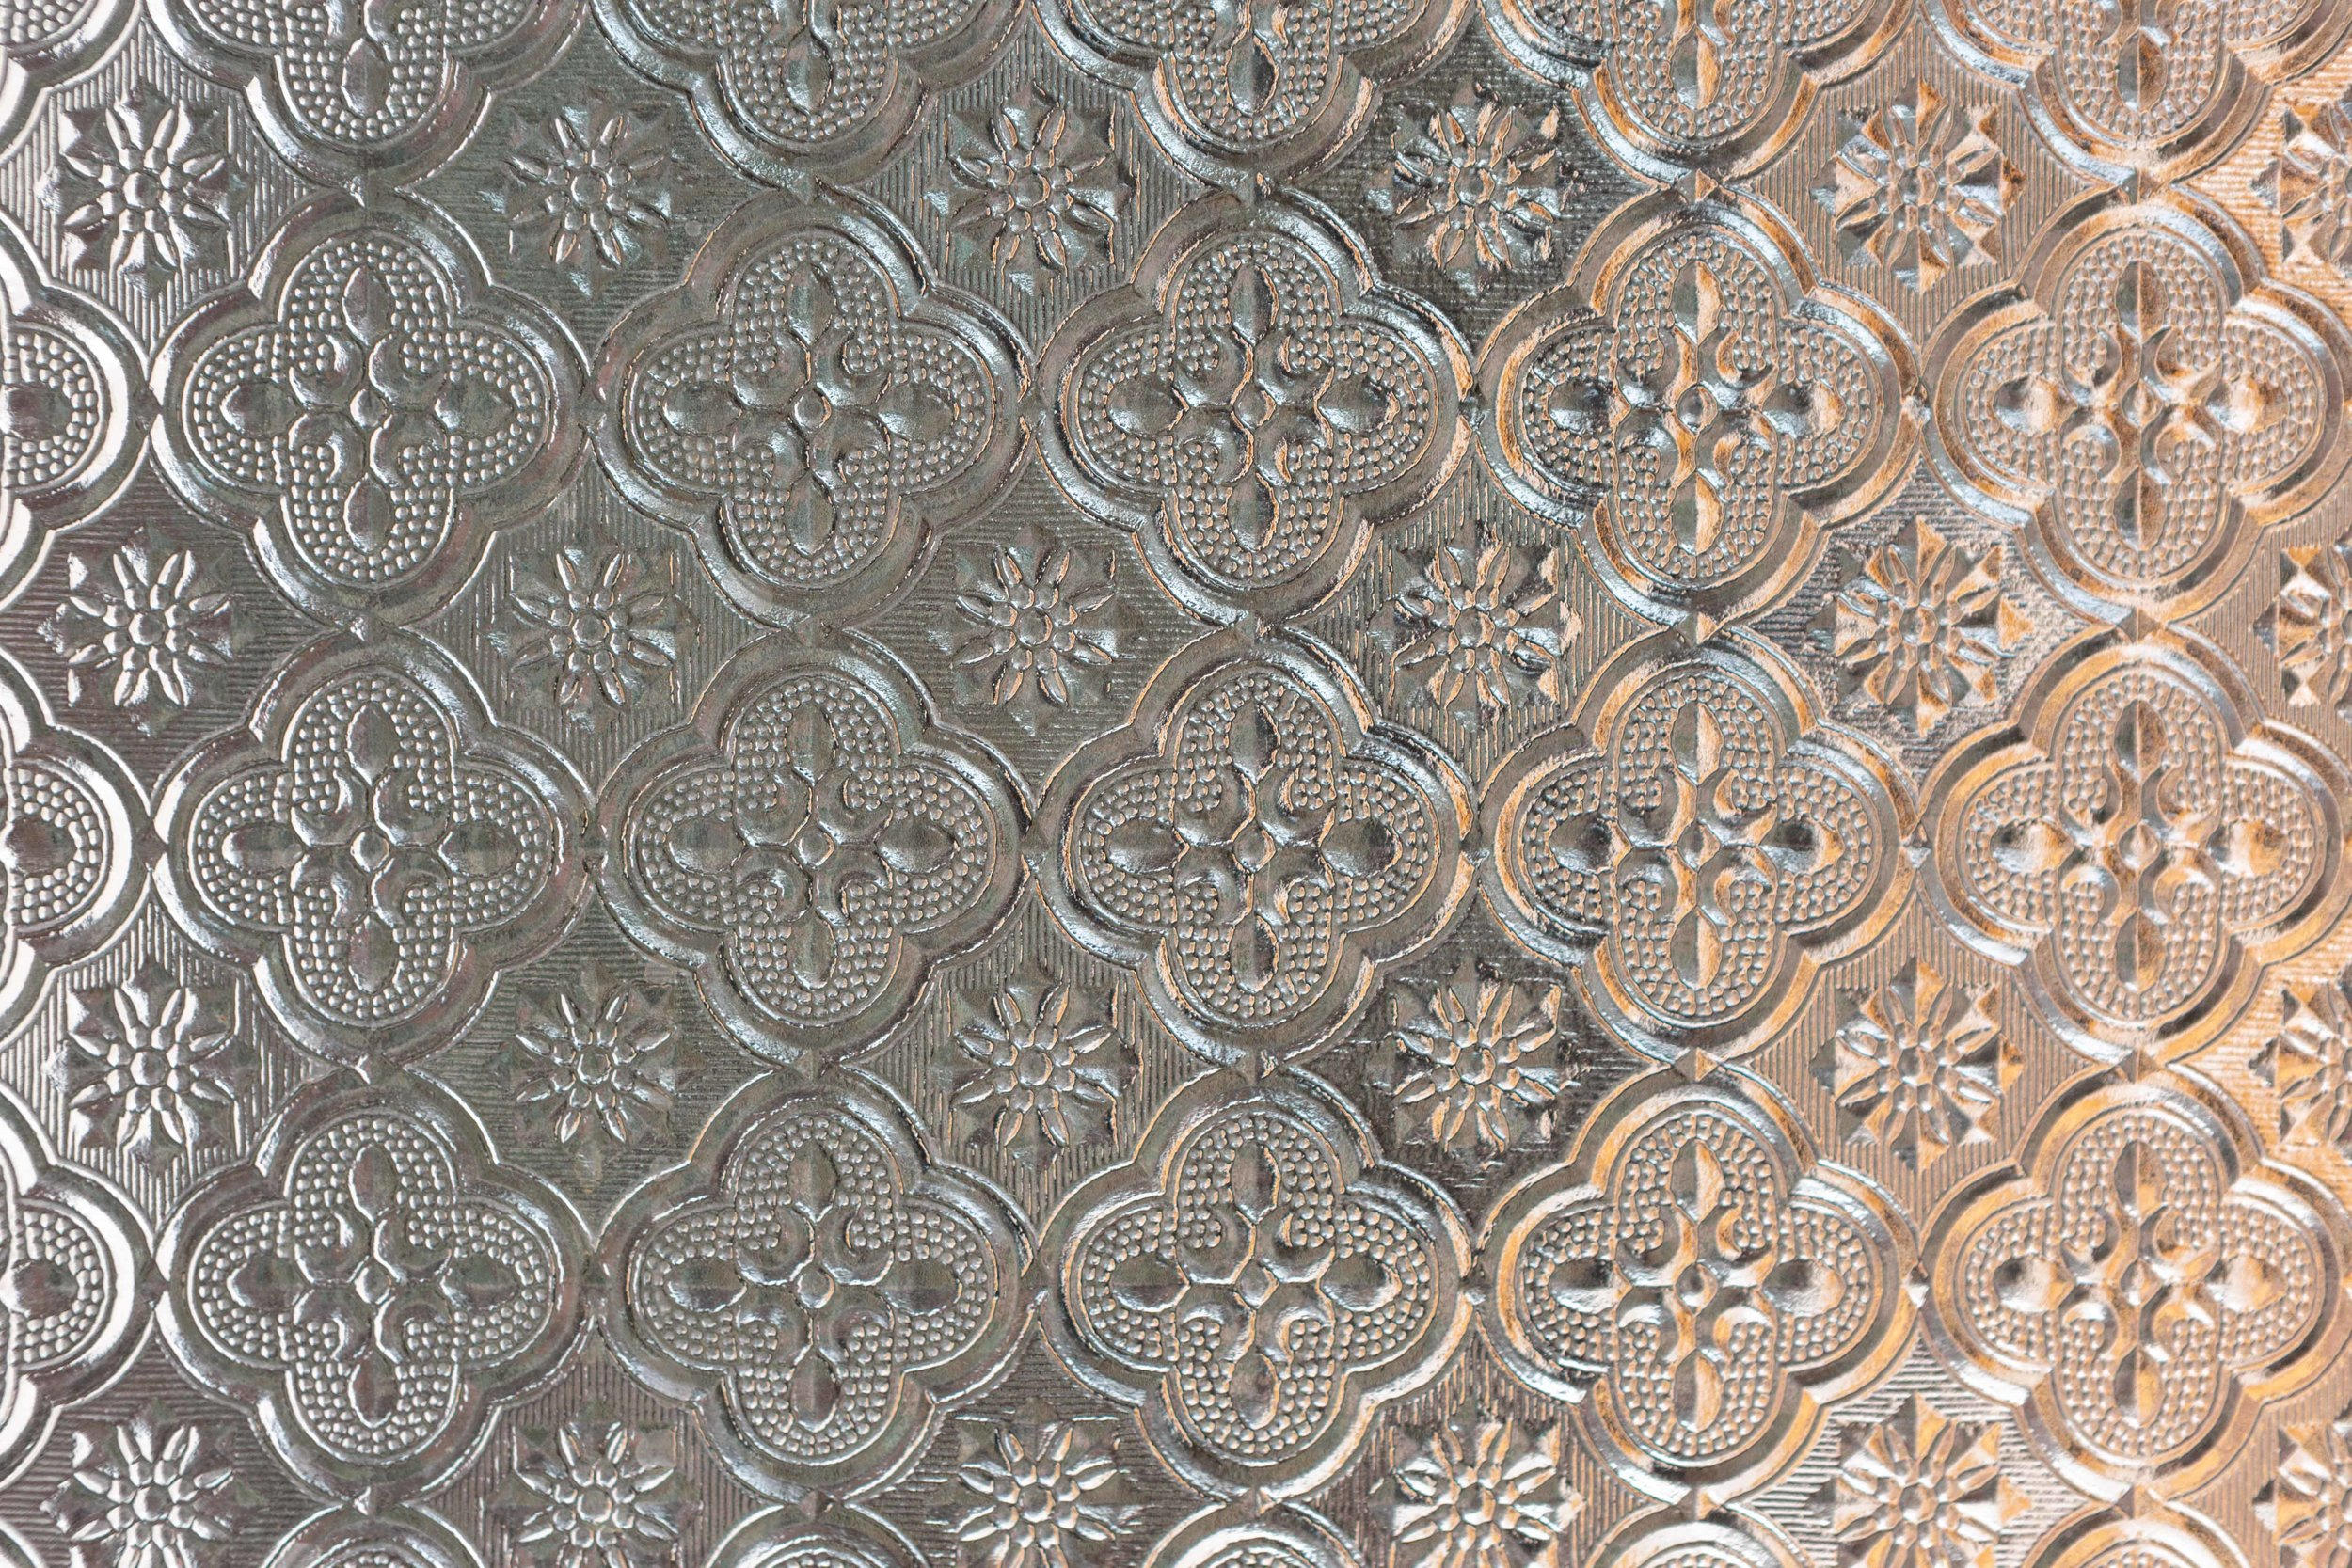 Patterns of Emerald Hill 191001 15, image by Andrew Campbell Nelson.jpg